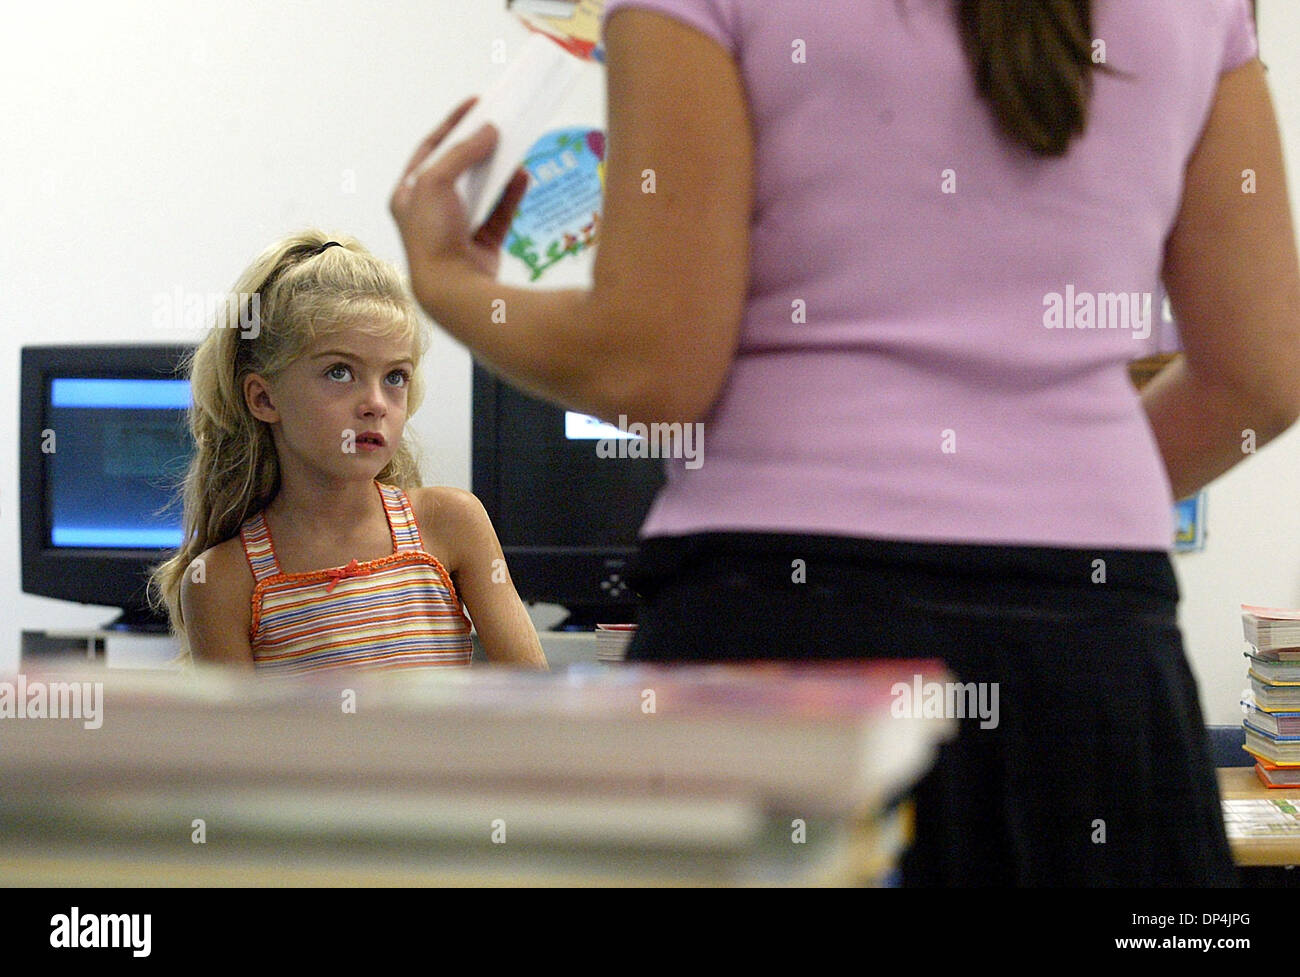 Aug 15, 2006; Boca Raton, FL, USA; Amanda Cozzens, 7, listens as first-year 2nd-grade teacher Paige Schildkraut chats with her parents during Meet the Teacher Day at Addison Mizner Elementary School in Boca Raton Tuesday, Aug. 15, 2006. Meet the Teacher Day was Wed. and Paige got to meet many of her students for the first time and introduce herself to their parents. Mandatory Credi - Stock Image